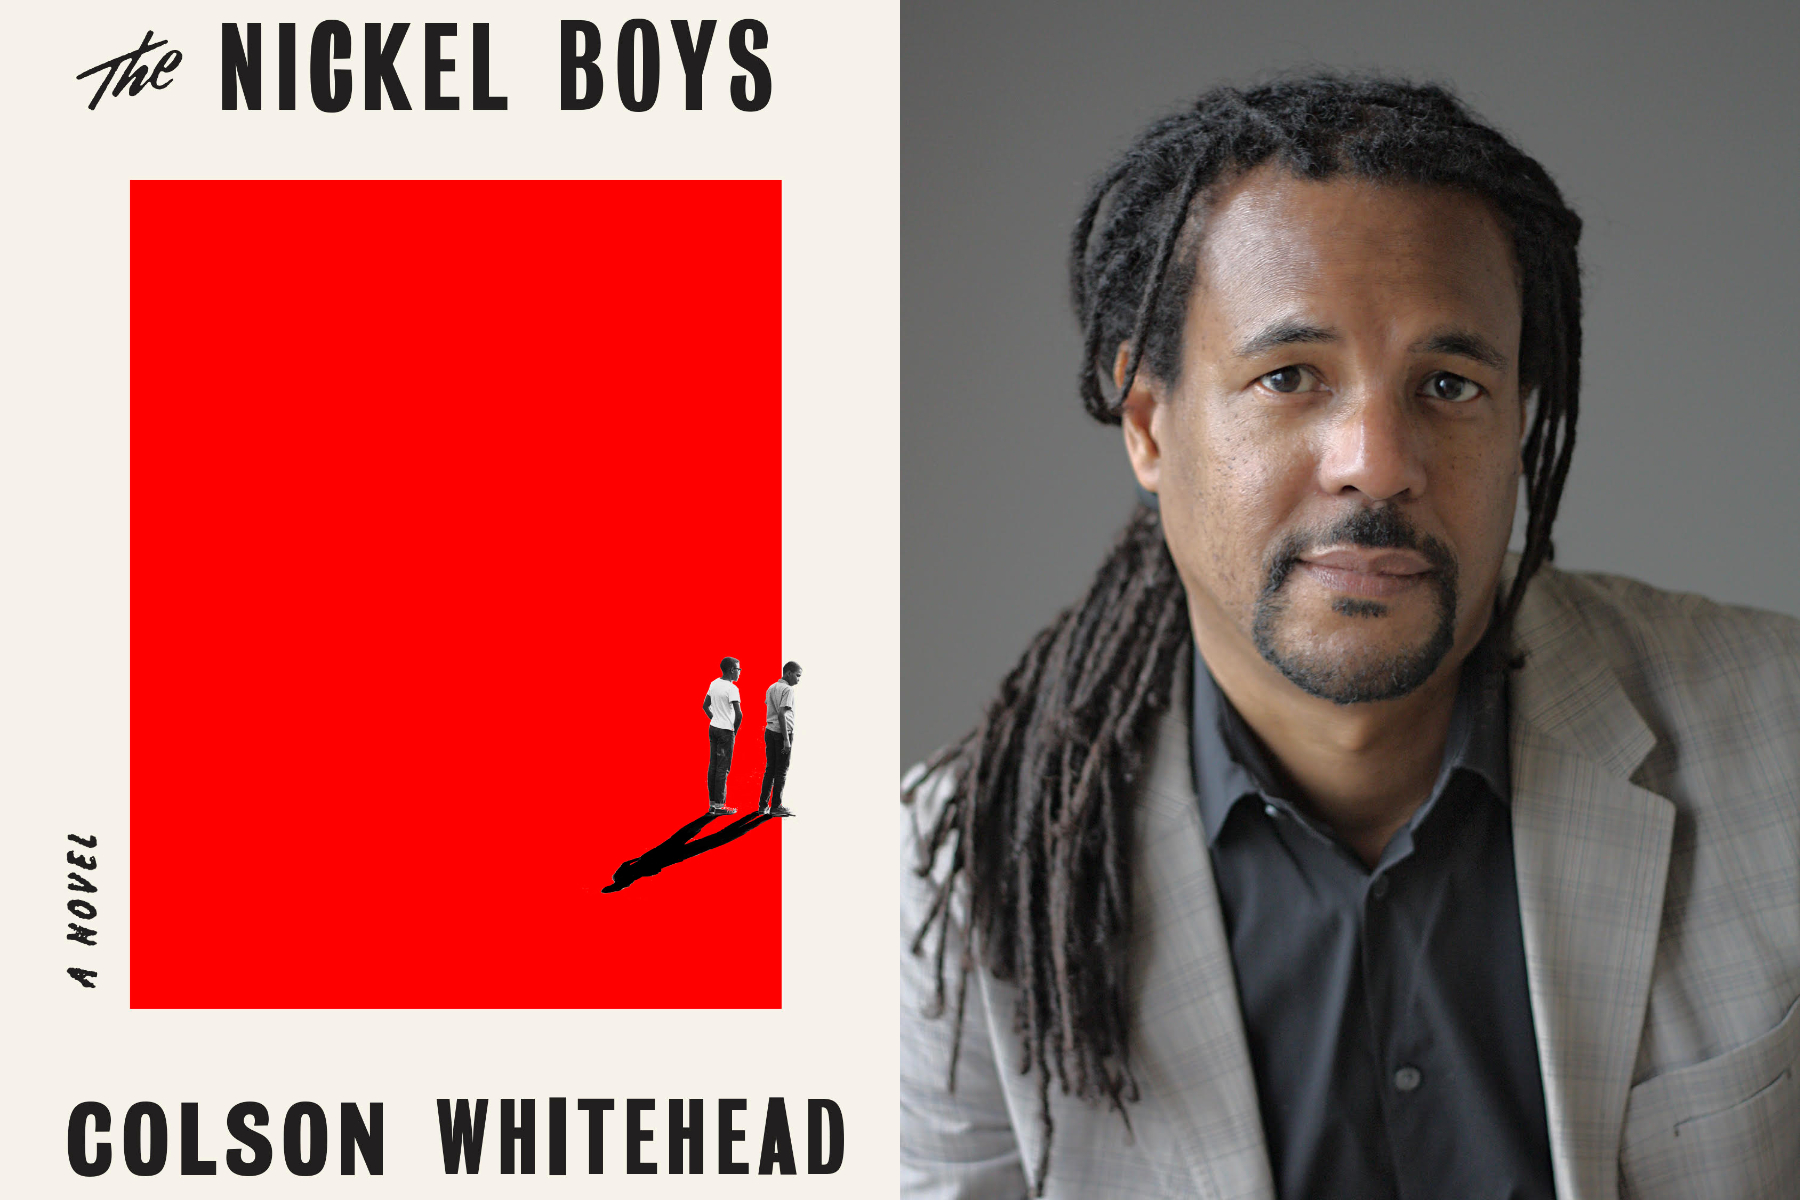 The Nickel Boys, a novel by Colson Whitehead.